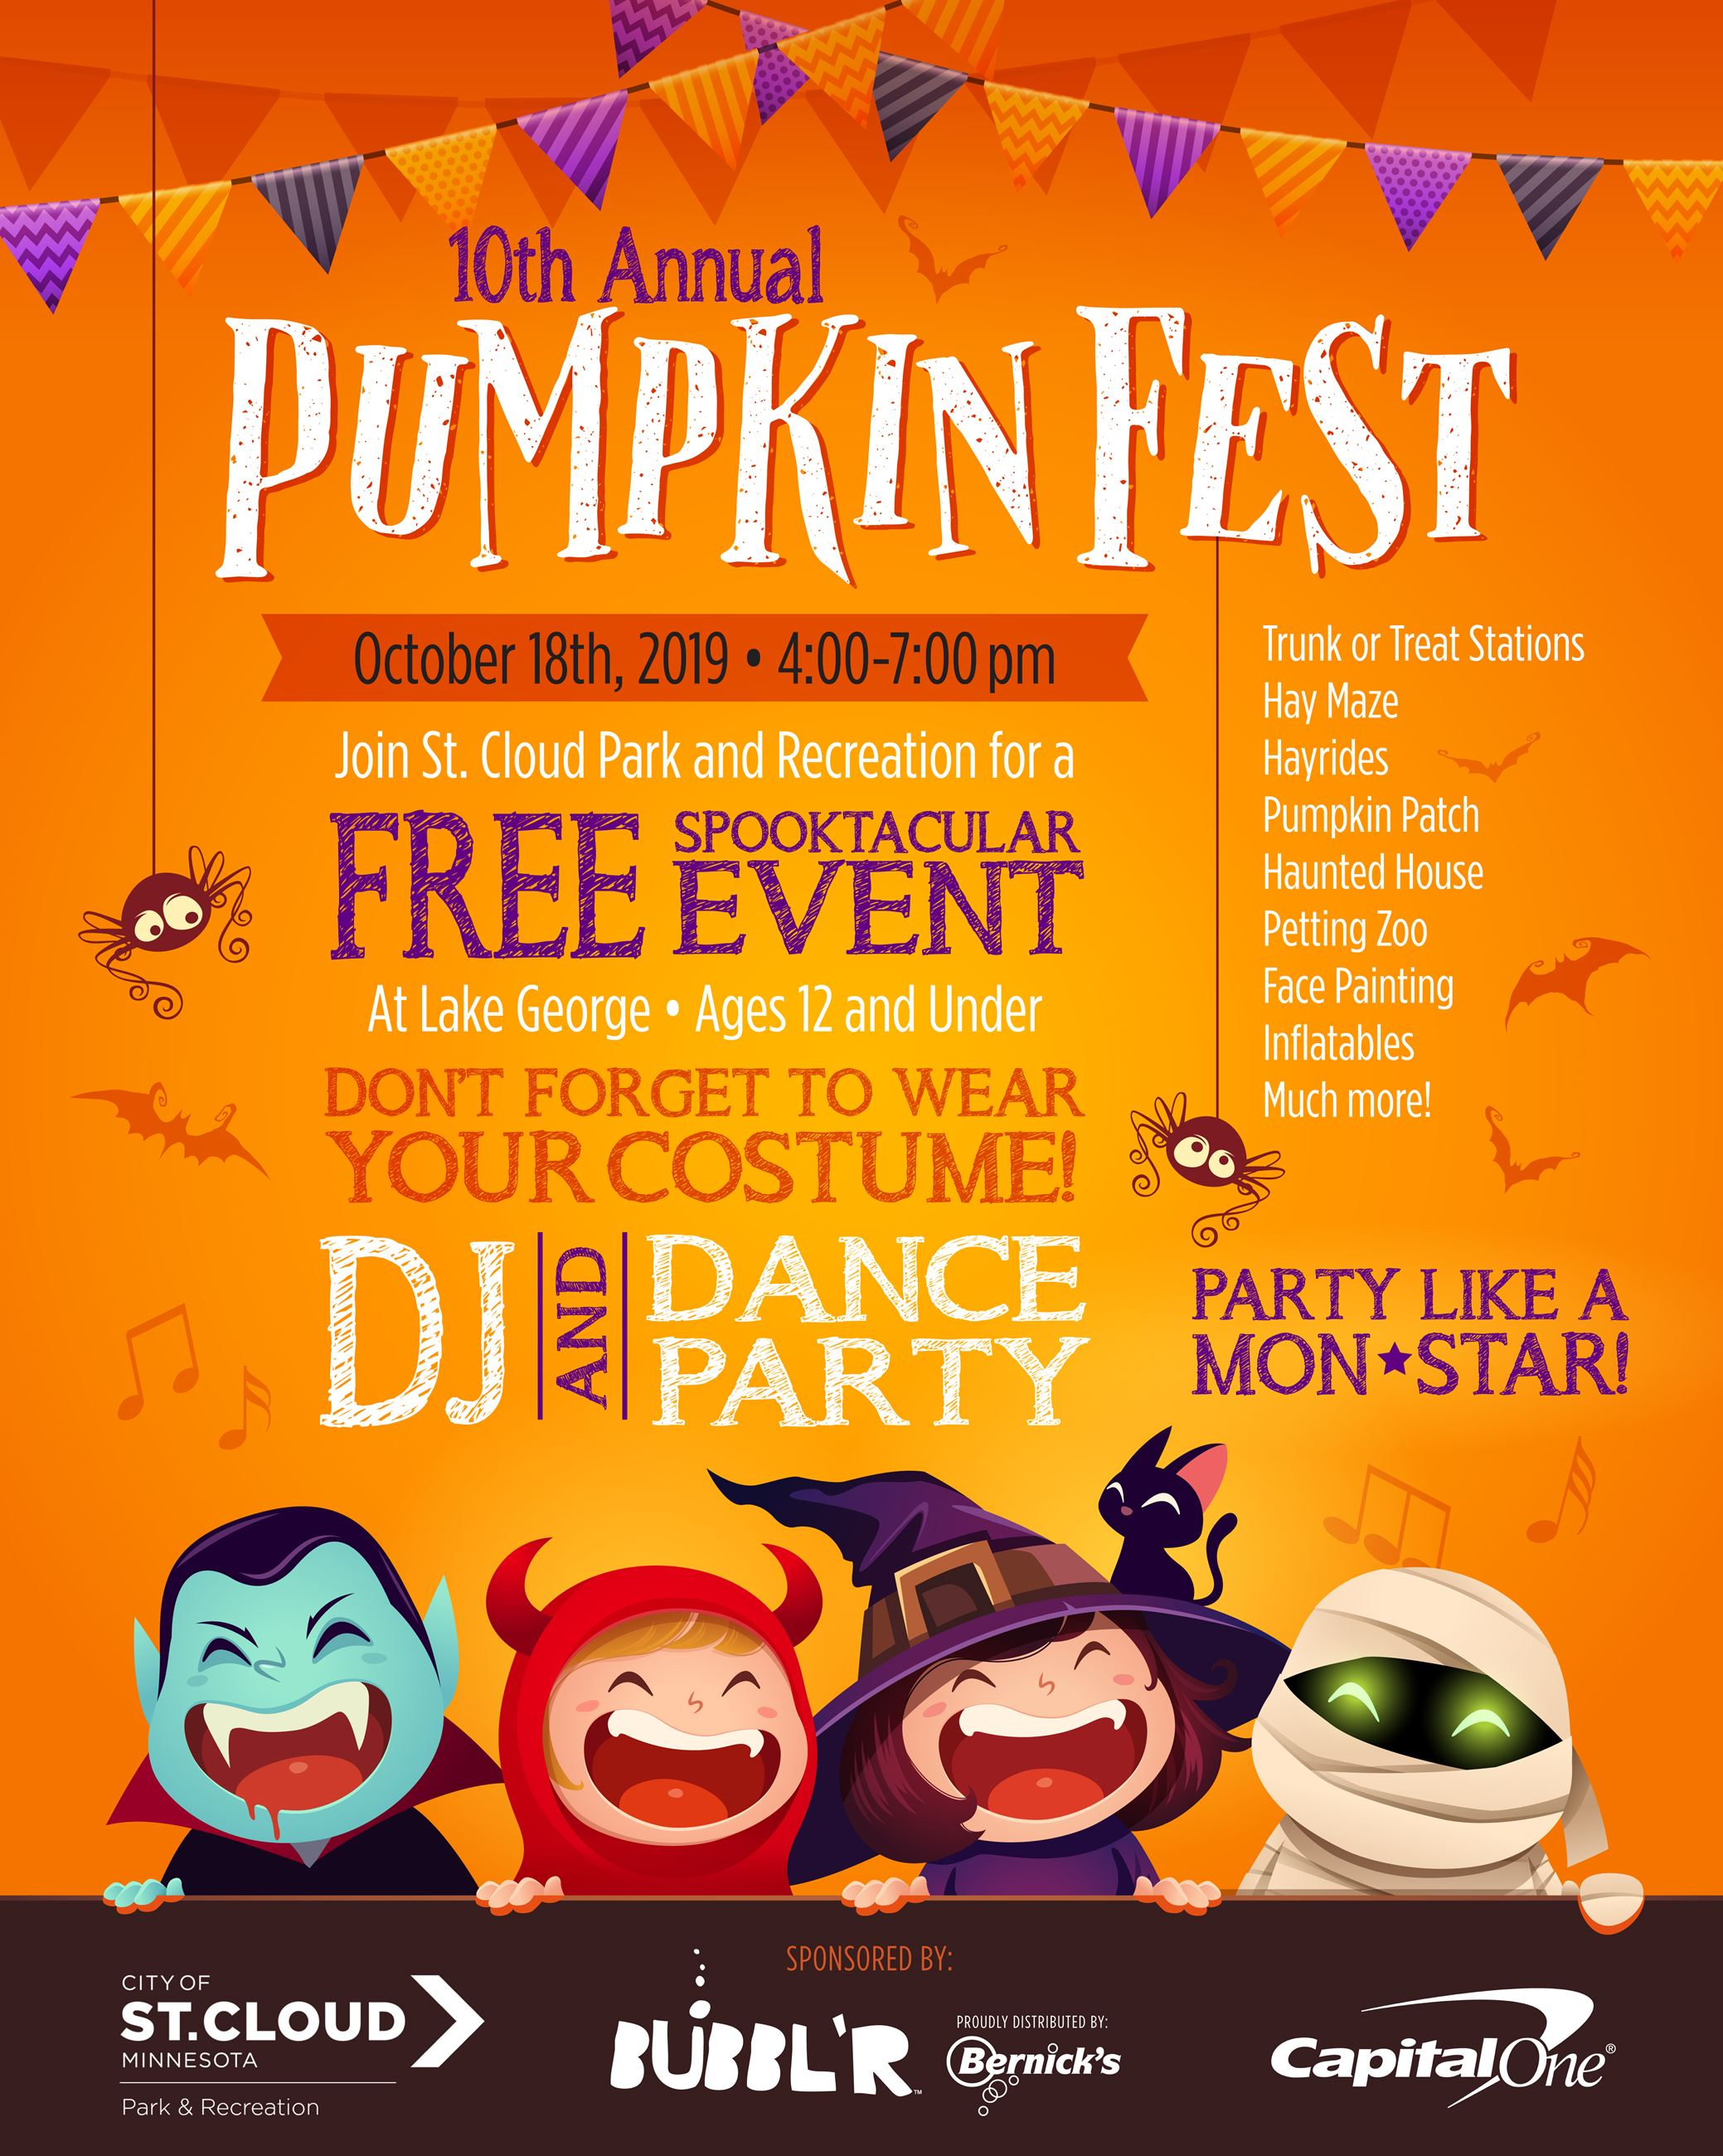 Pumpkinfest 2019 October 18th at Lake George